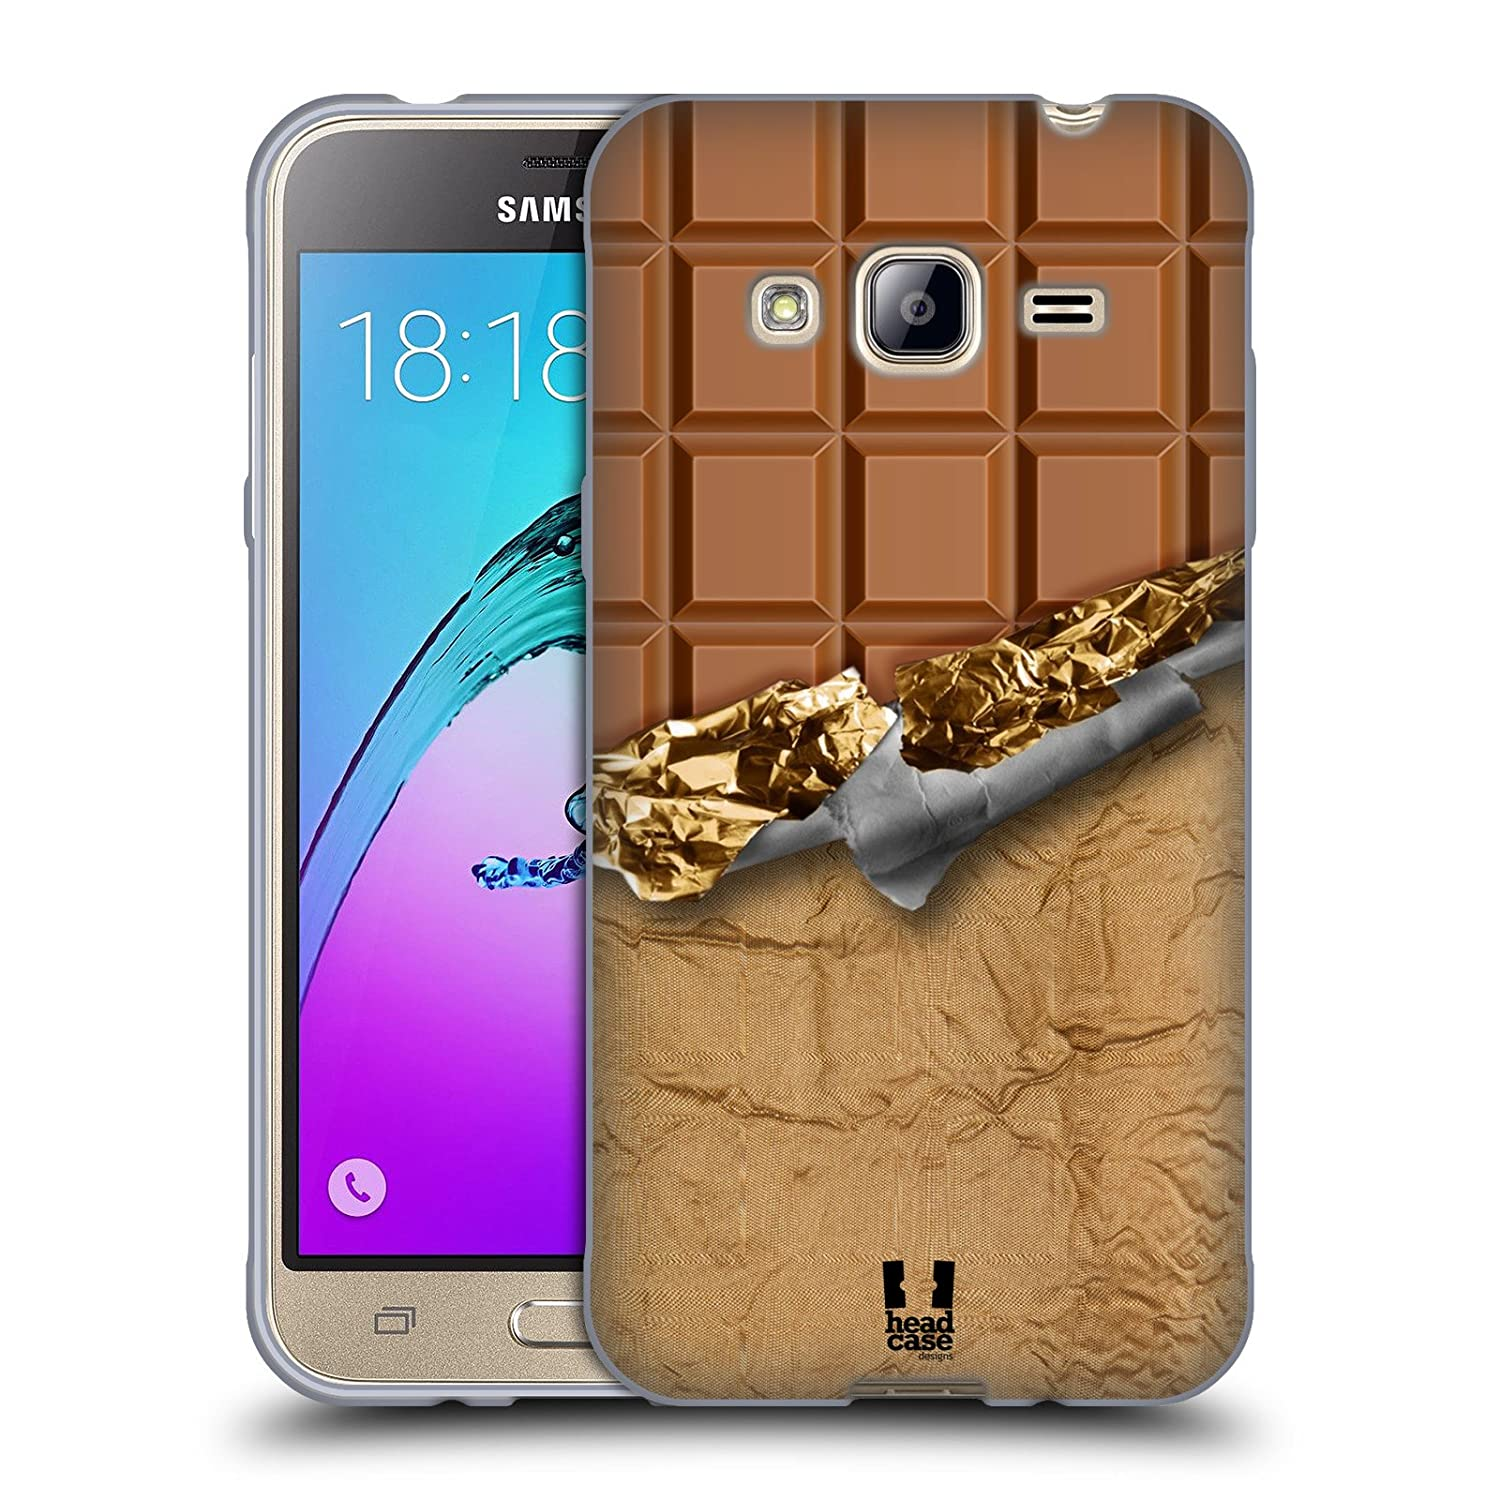 coque samsung j3 2016 fun